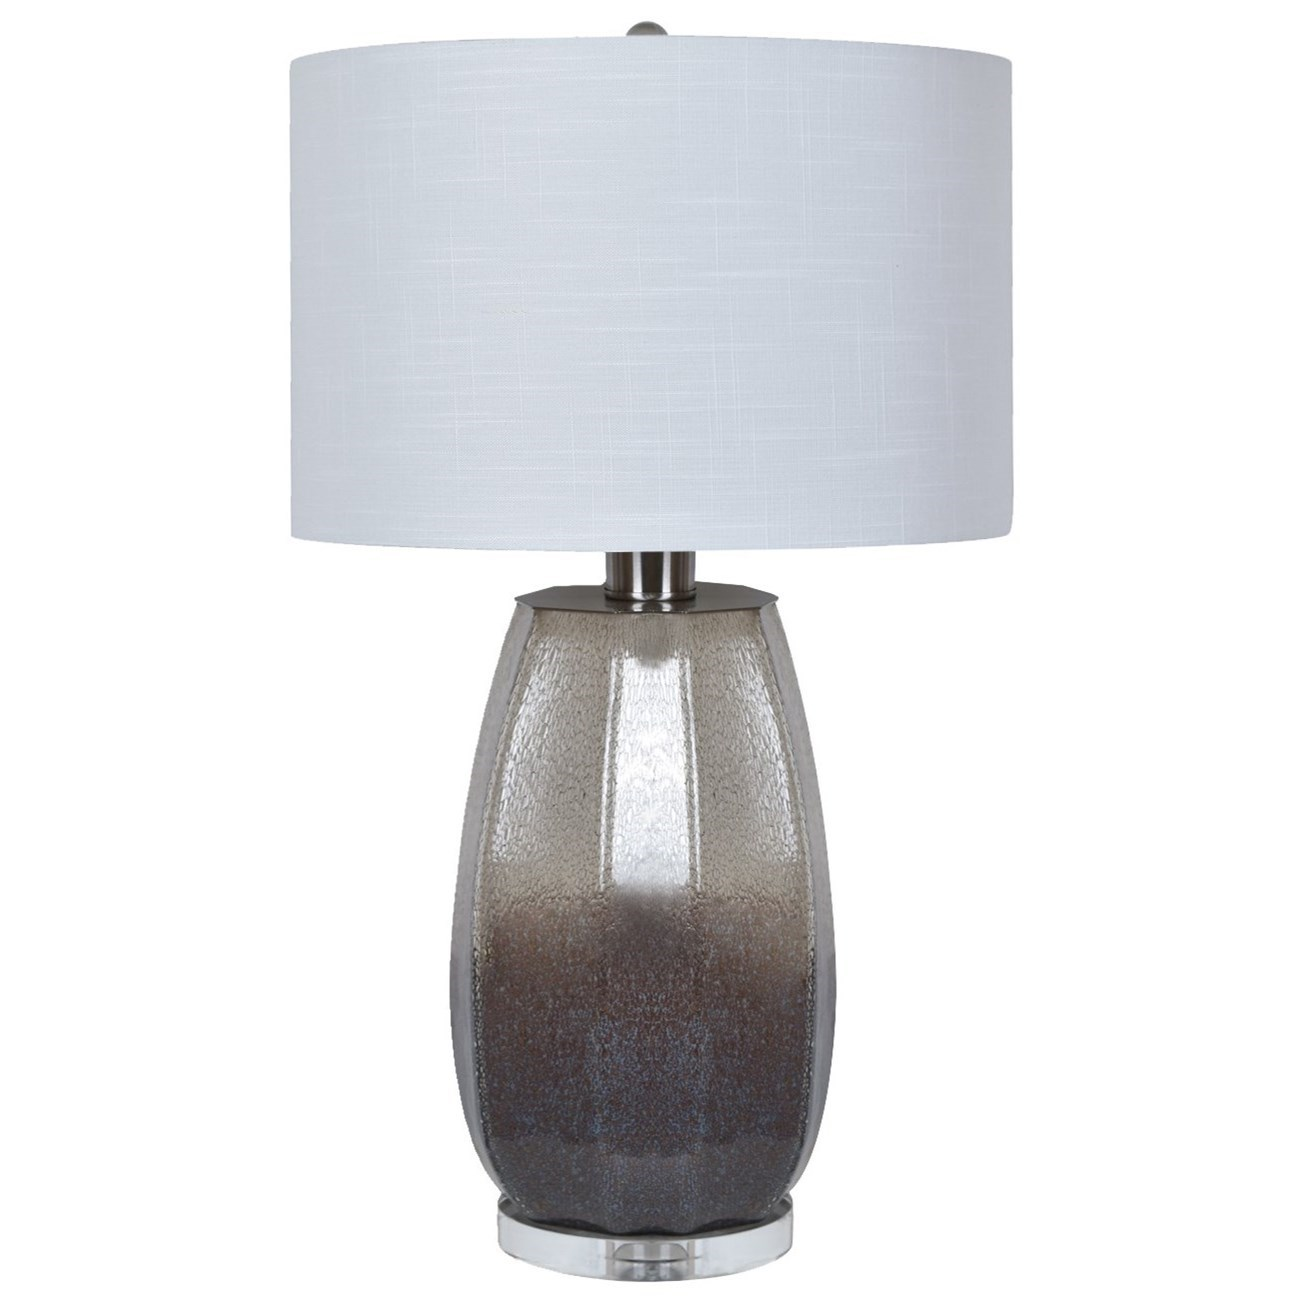 Lighting Kenshin Table Lamp by Crestview Collection at Rife's Home Furniture